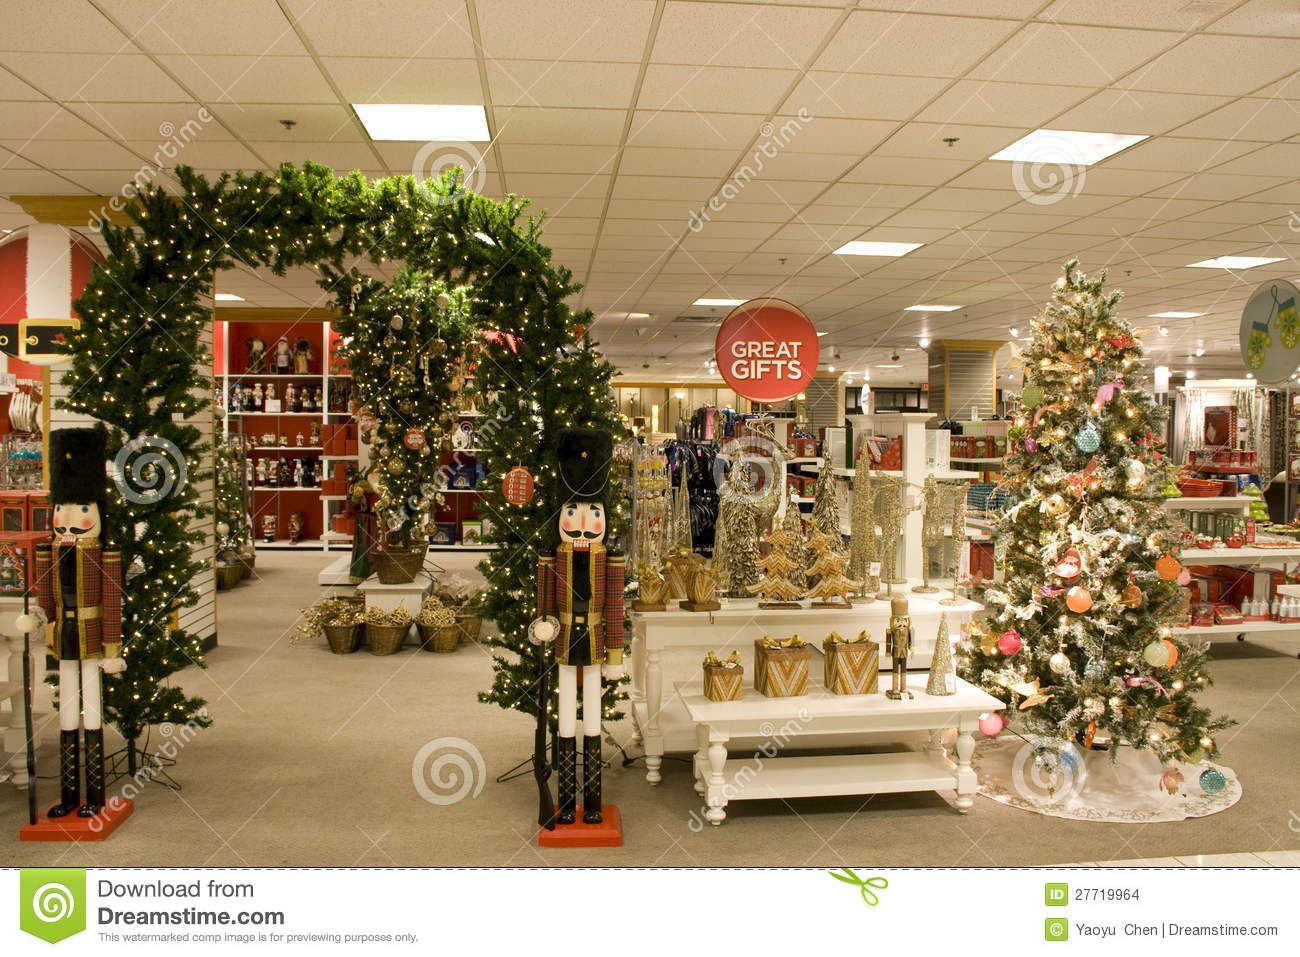 Department Store Christmas Decorations Storing Christmas Decorations Traditional Holiday Decor Christmas Decorations